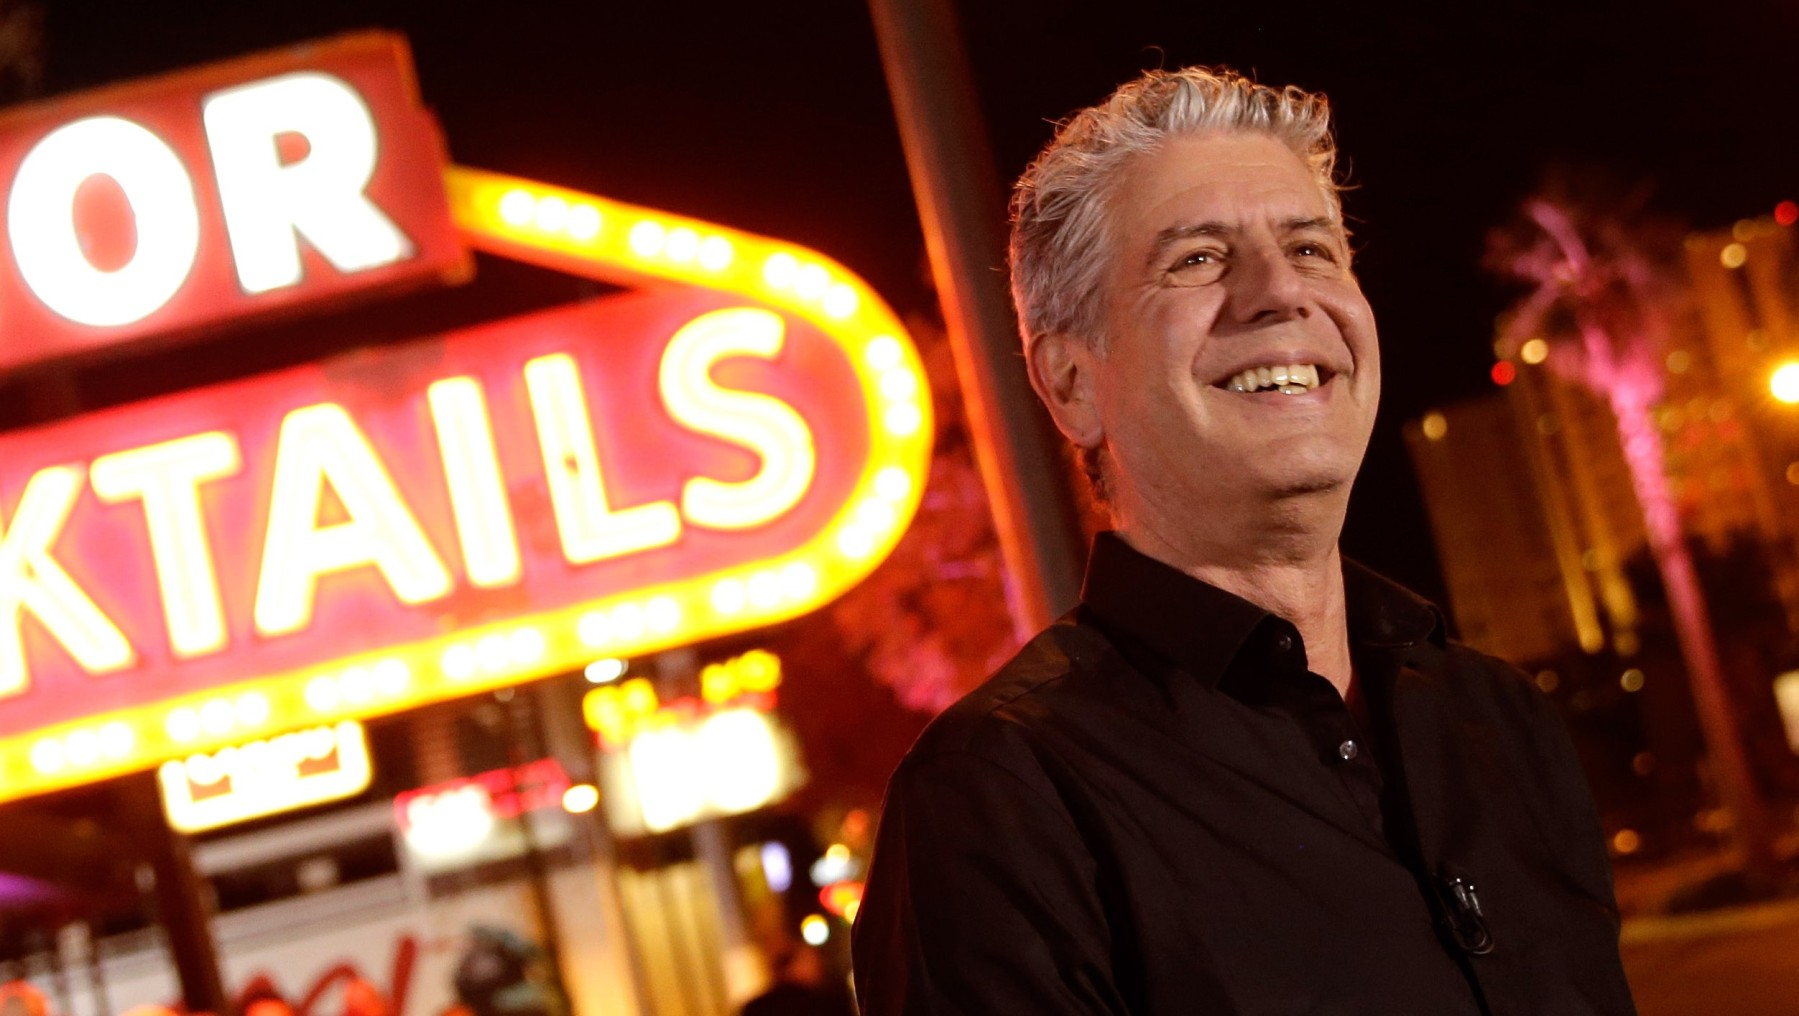 "LAS VEGAS, NV - NOVEMBER 10: TV Personality Anthony Bourdain attends ""Parts Unknown Last Bite"" Live CNN Talk Show hosted by Anthony Bourdain at Atomic Liquors on November 10, 2013 in Las Vegas, Nevada. 24280_001_0259.JPG  (Photo by Isaac Brekken/WireImage)"